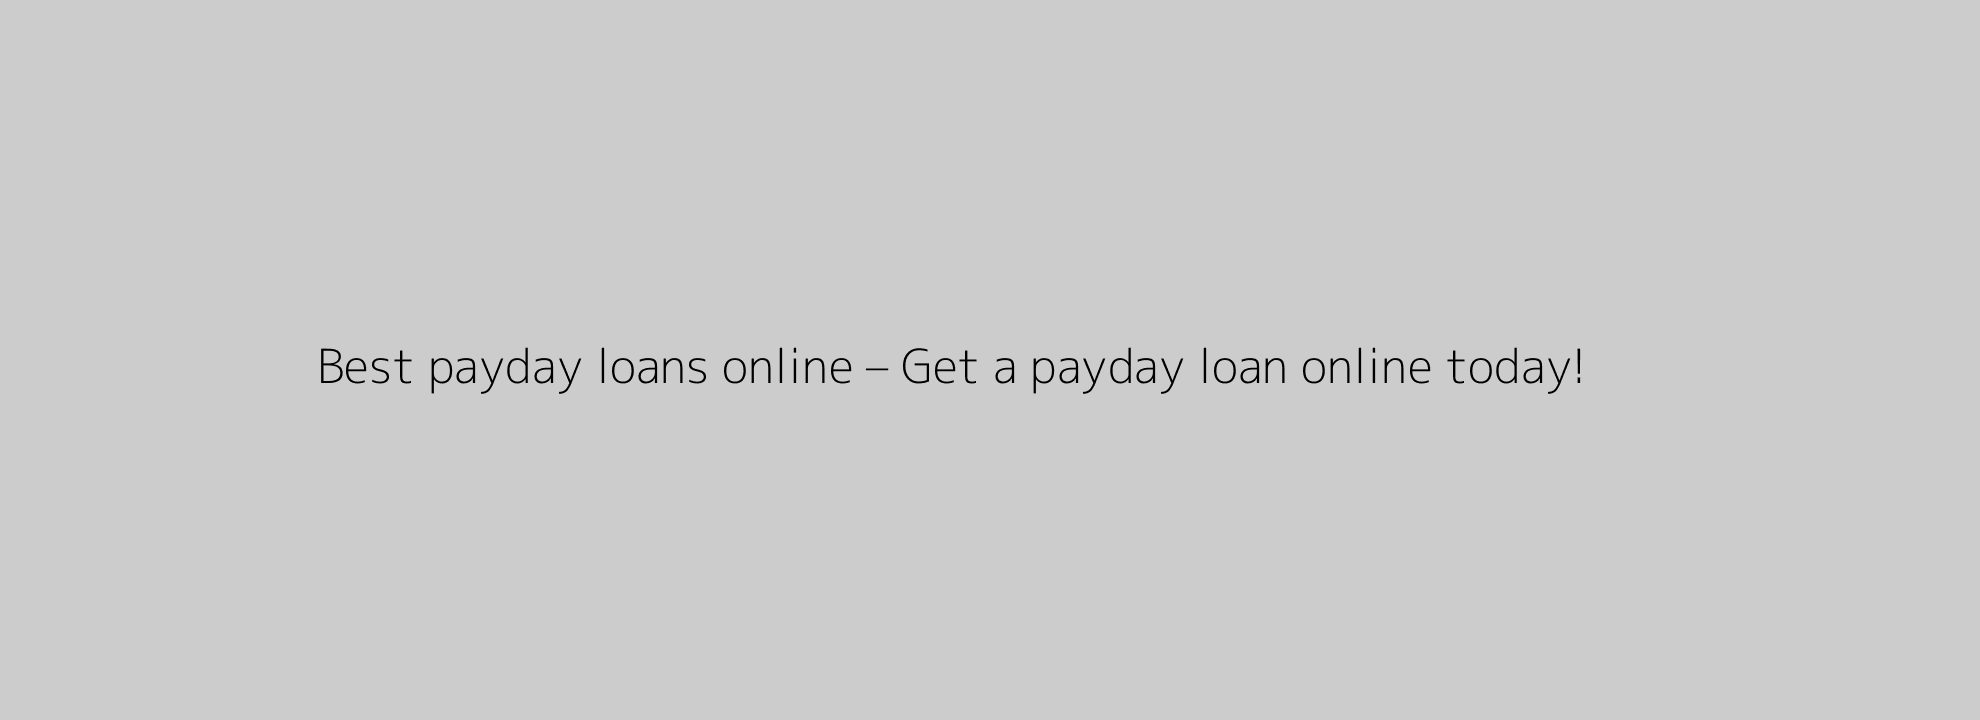 Best payday loans online – Get a payday loan online today!